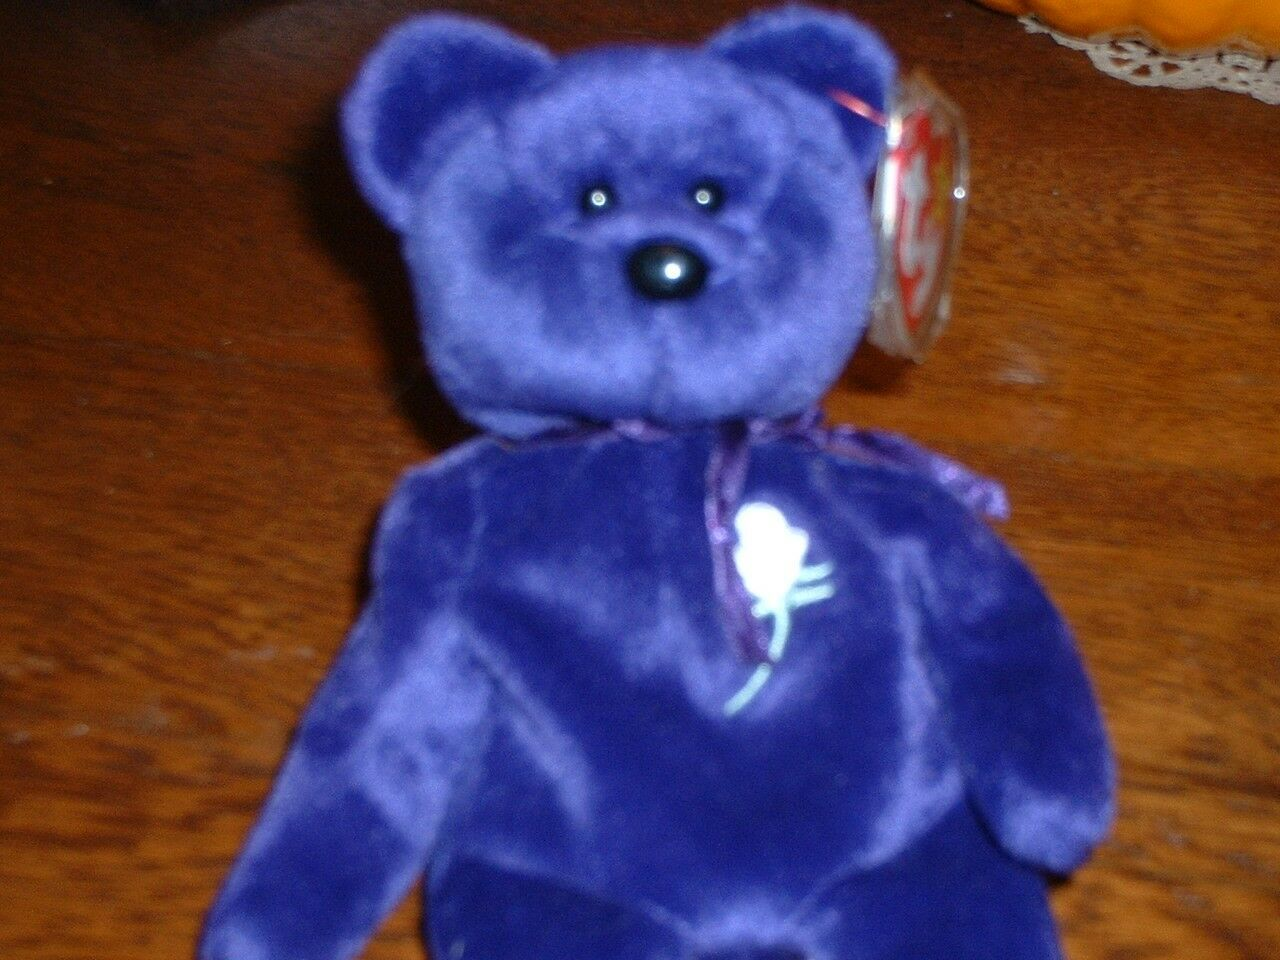 PRINCESS Diana Bear 1997 Ty Beanie Baby PVC Pellets Retired, ty tag in plastic